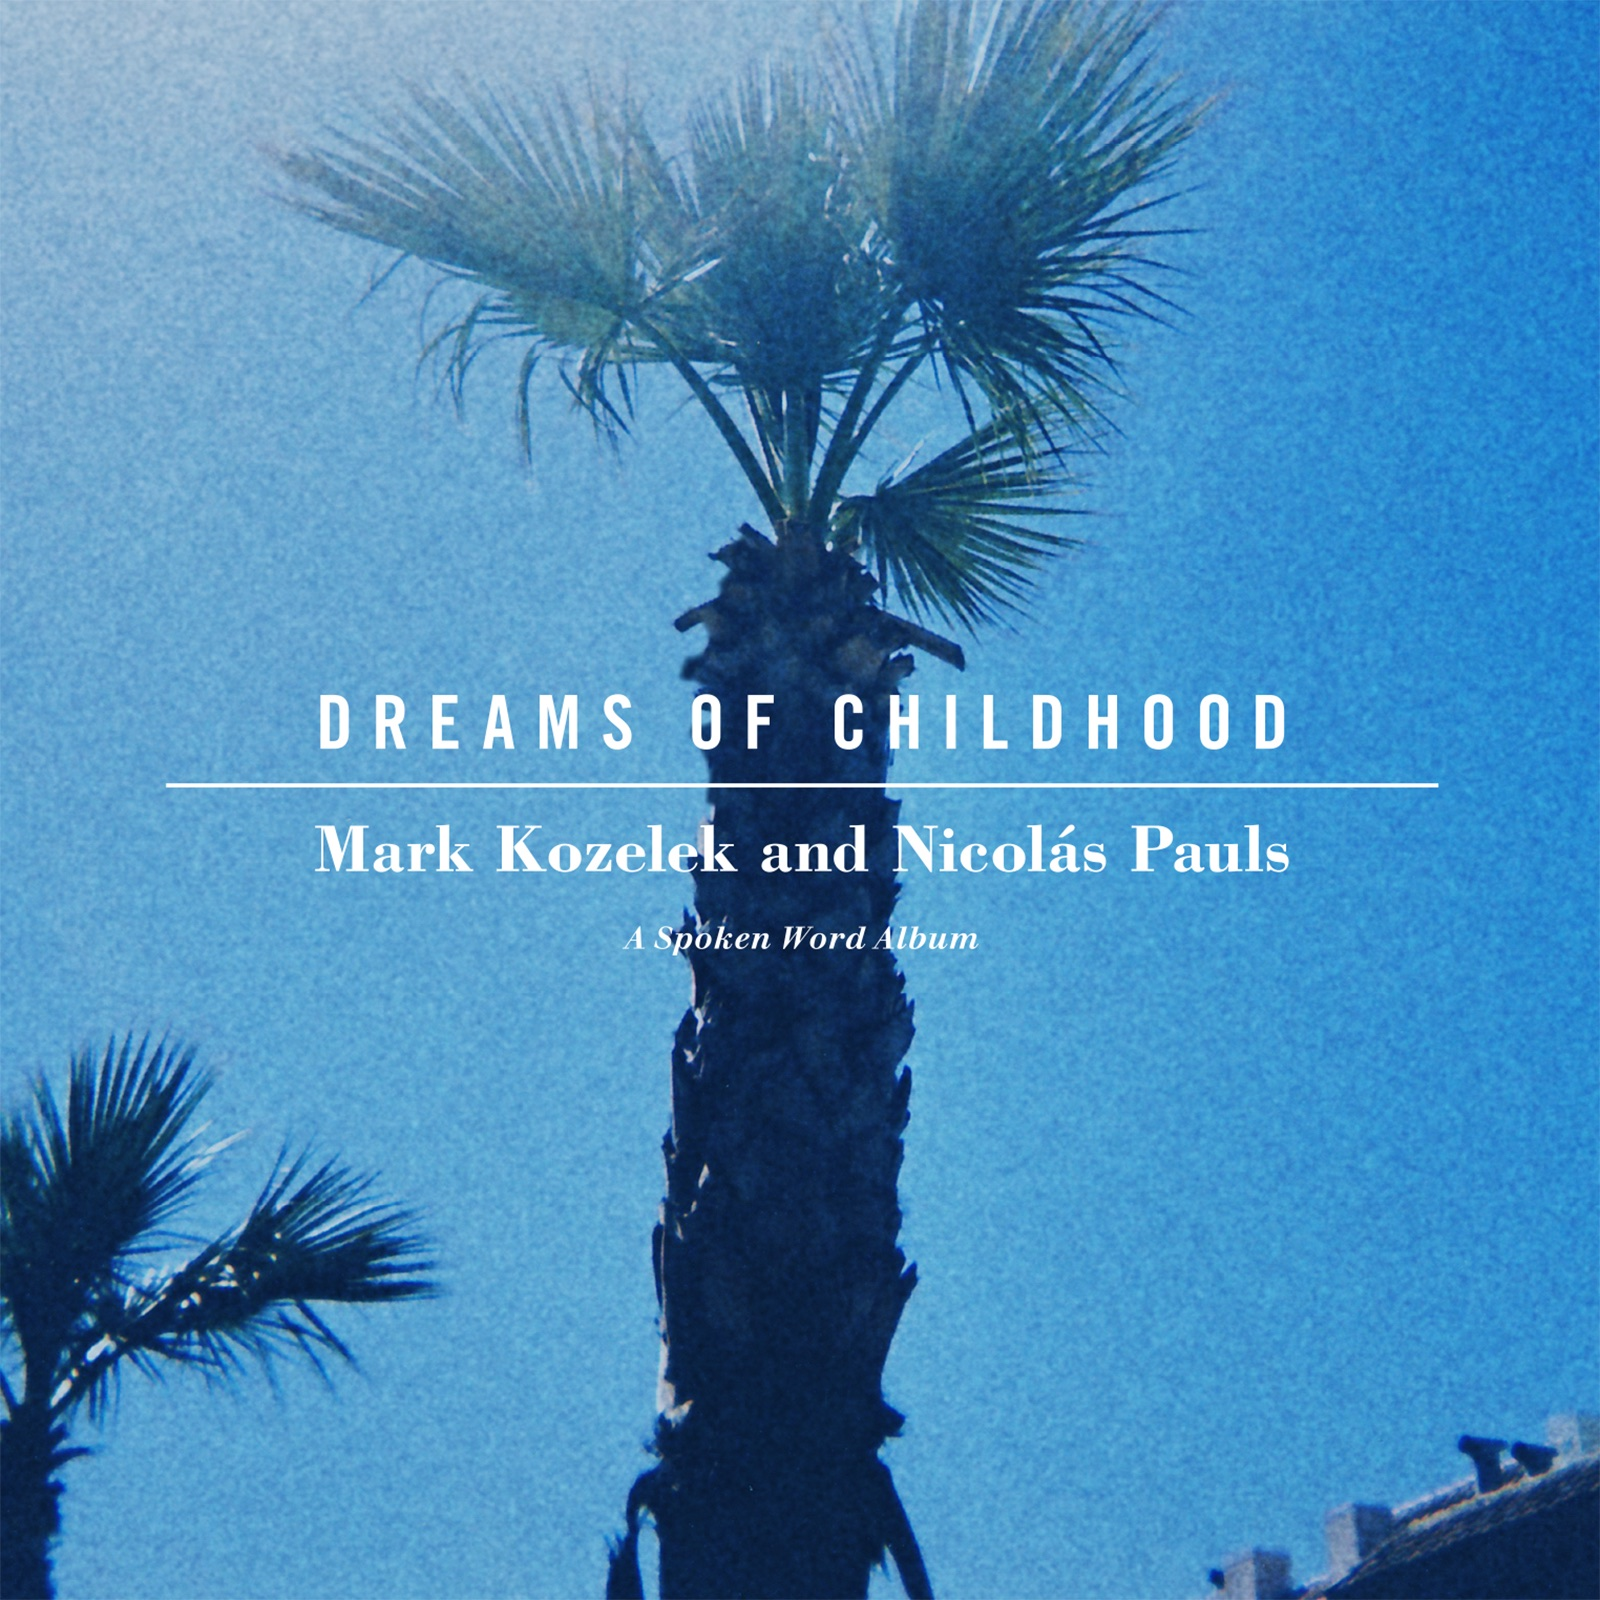 Mark-Kozelek_Nicolas-Pauls-2015-Dreams-of-Childhood_cover.jpg